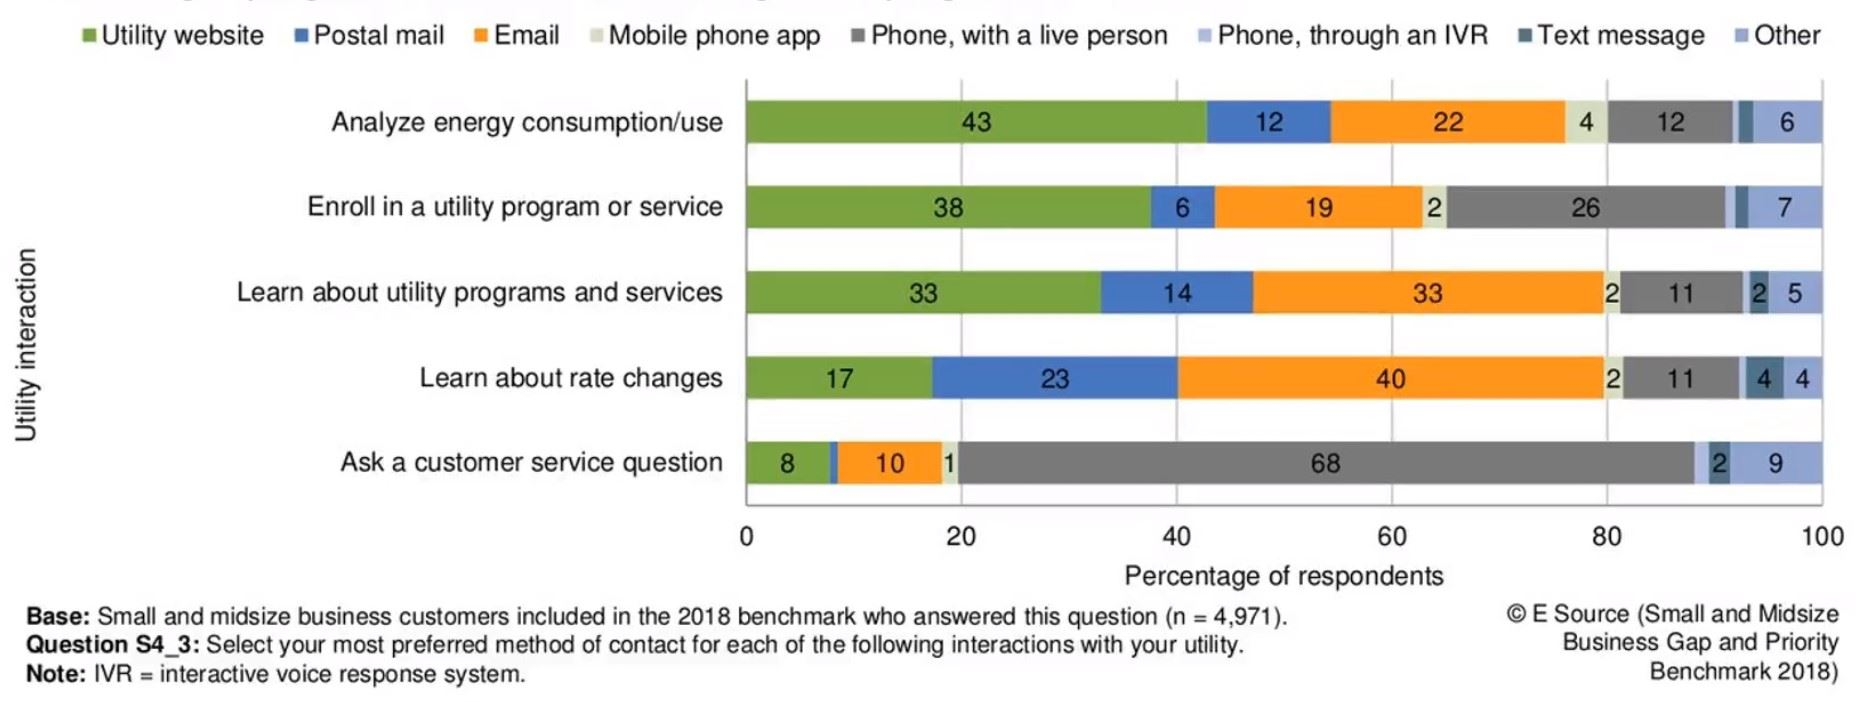 Bar graph showing preferred contact method for various interactions with utility.